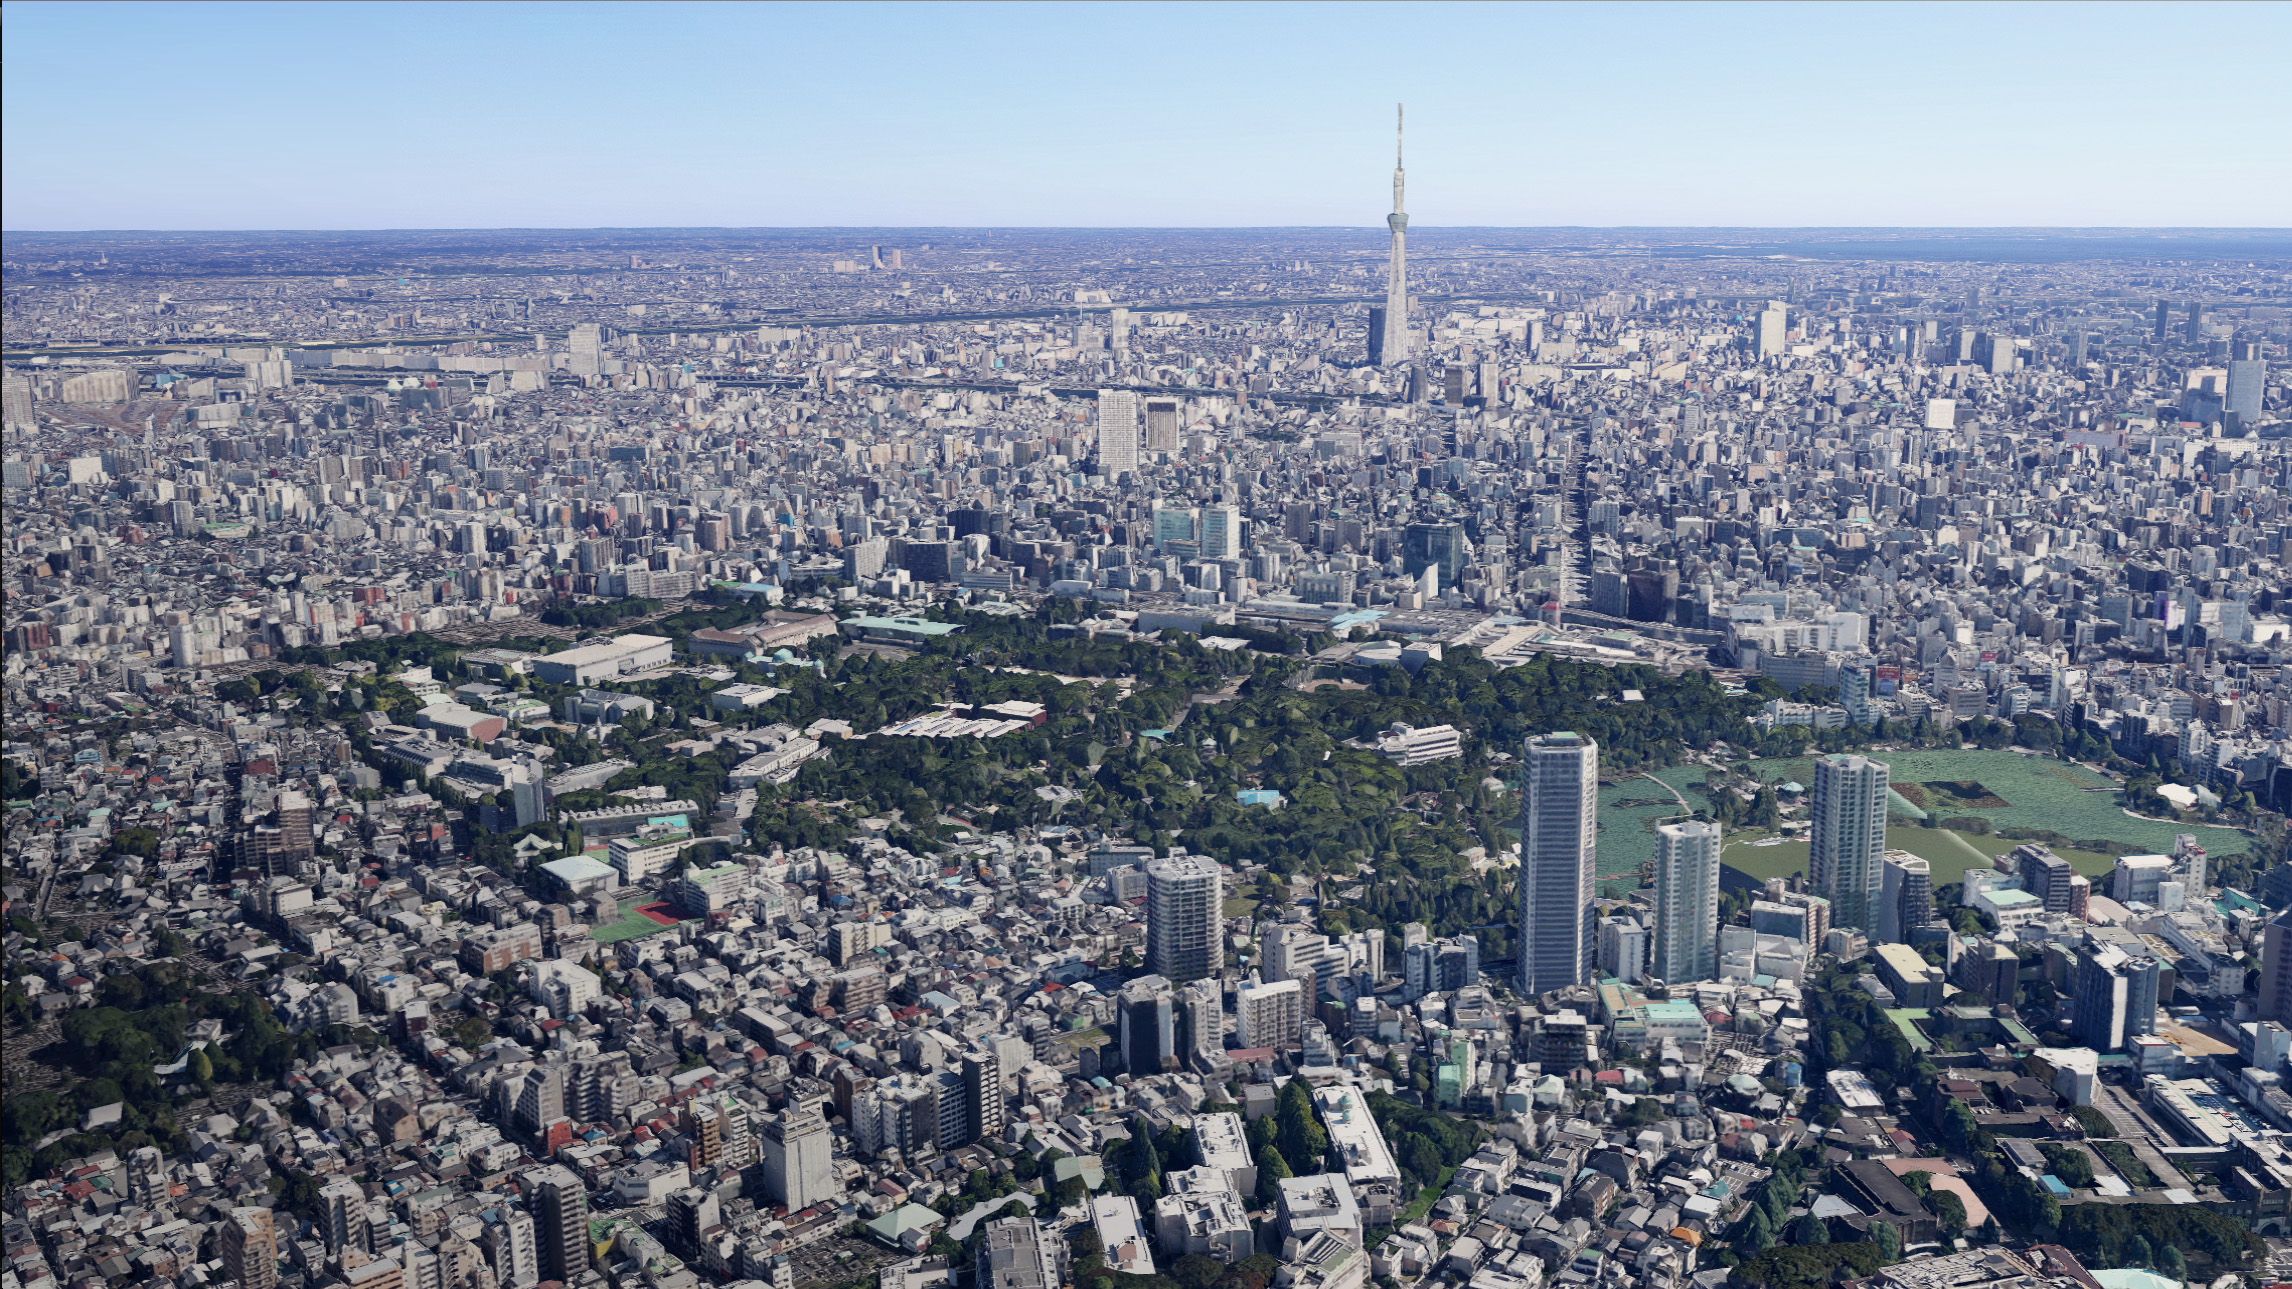 3d Tree Live Wallpaper You Can Now See More 3d Images Of Tokyo On Google Maps